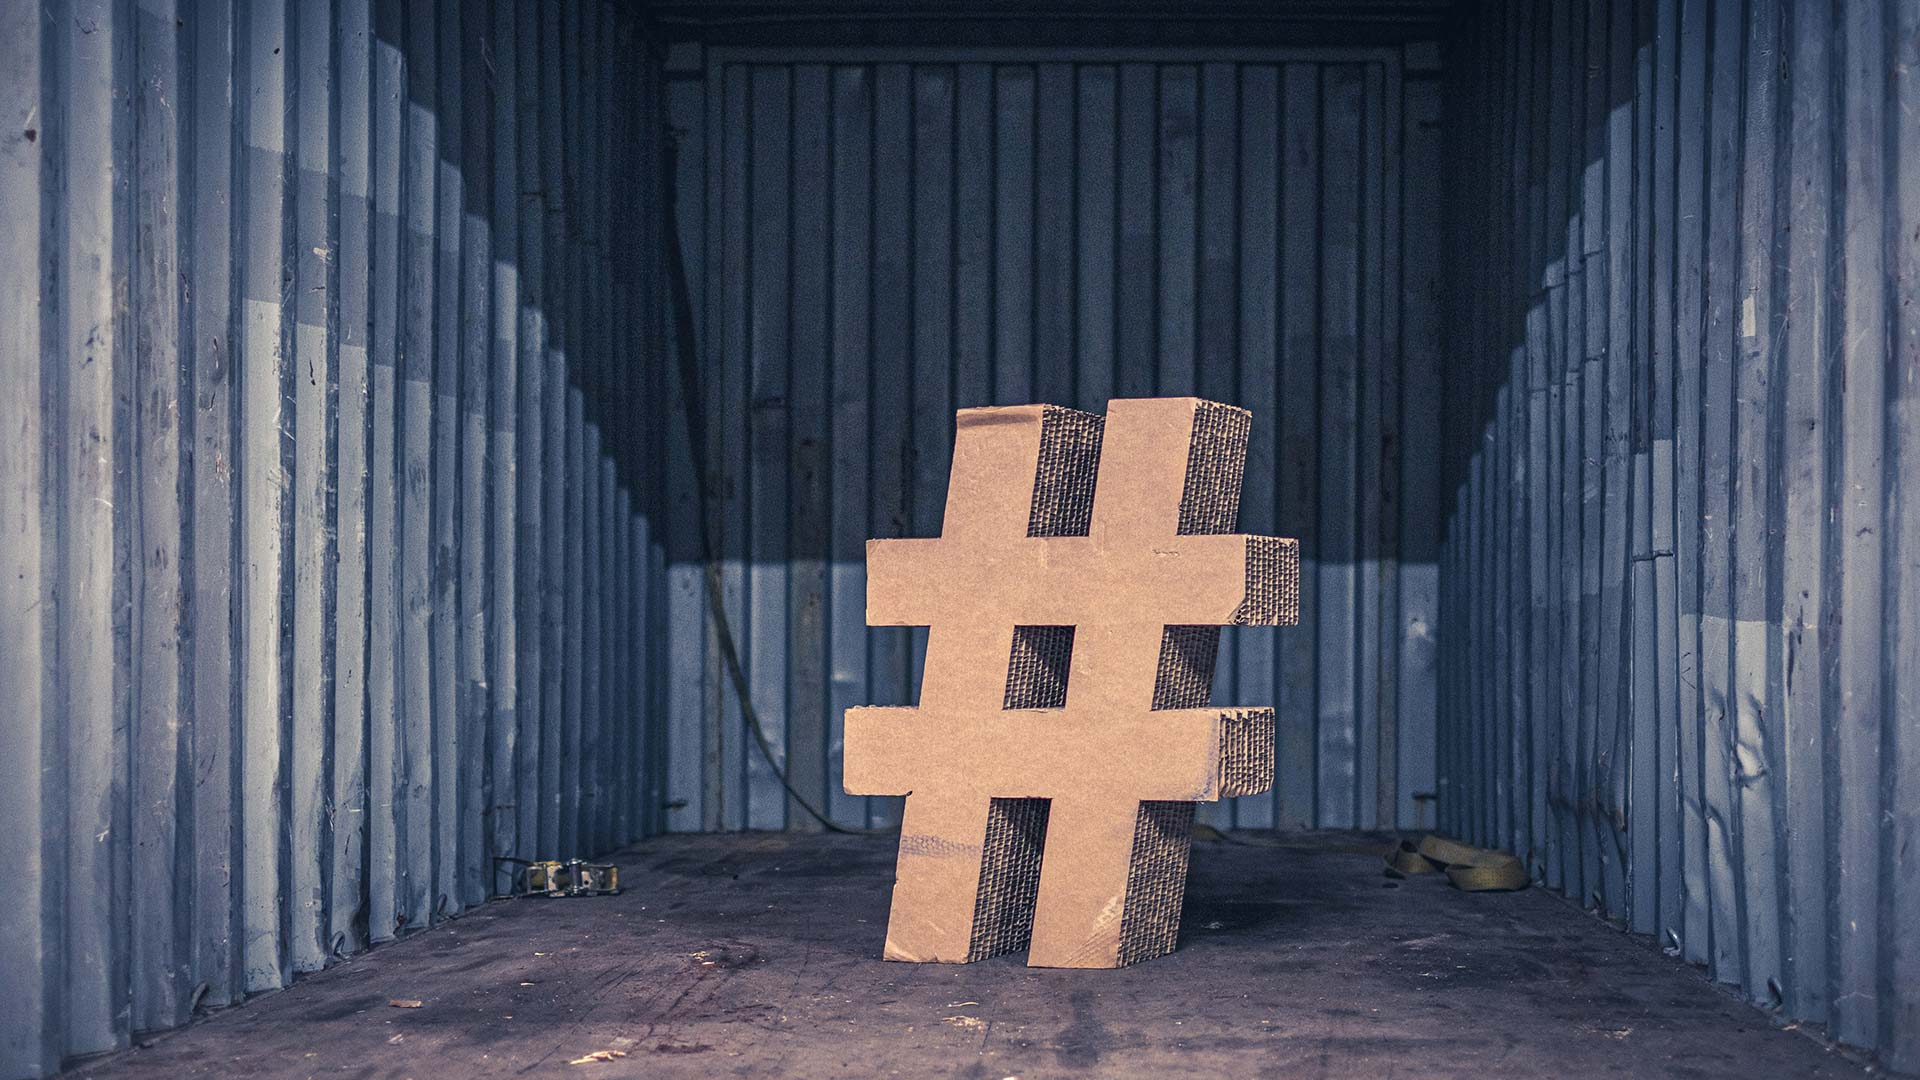 hashtag in shipping container